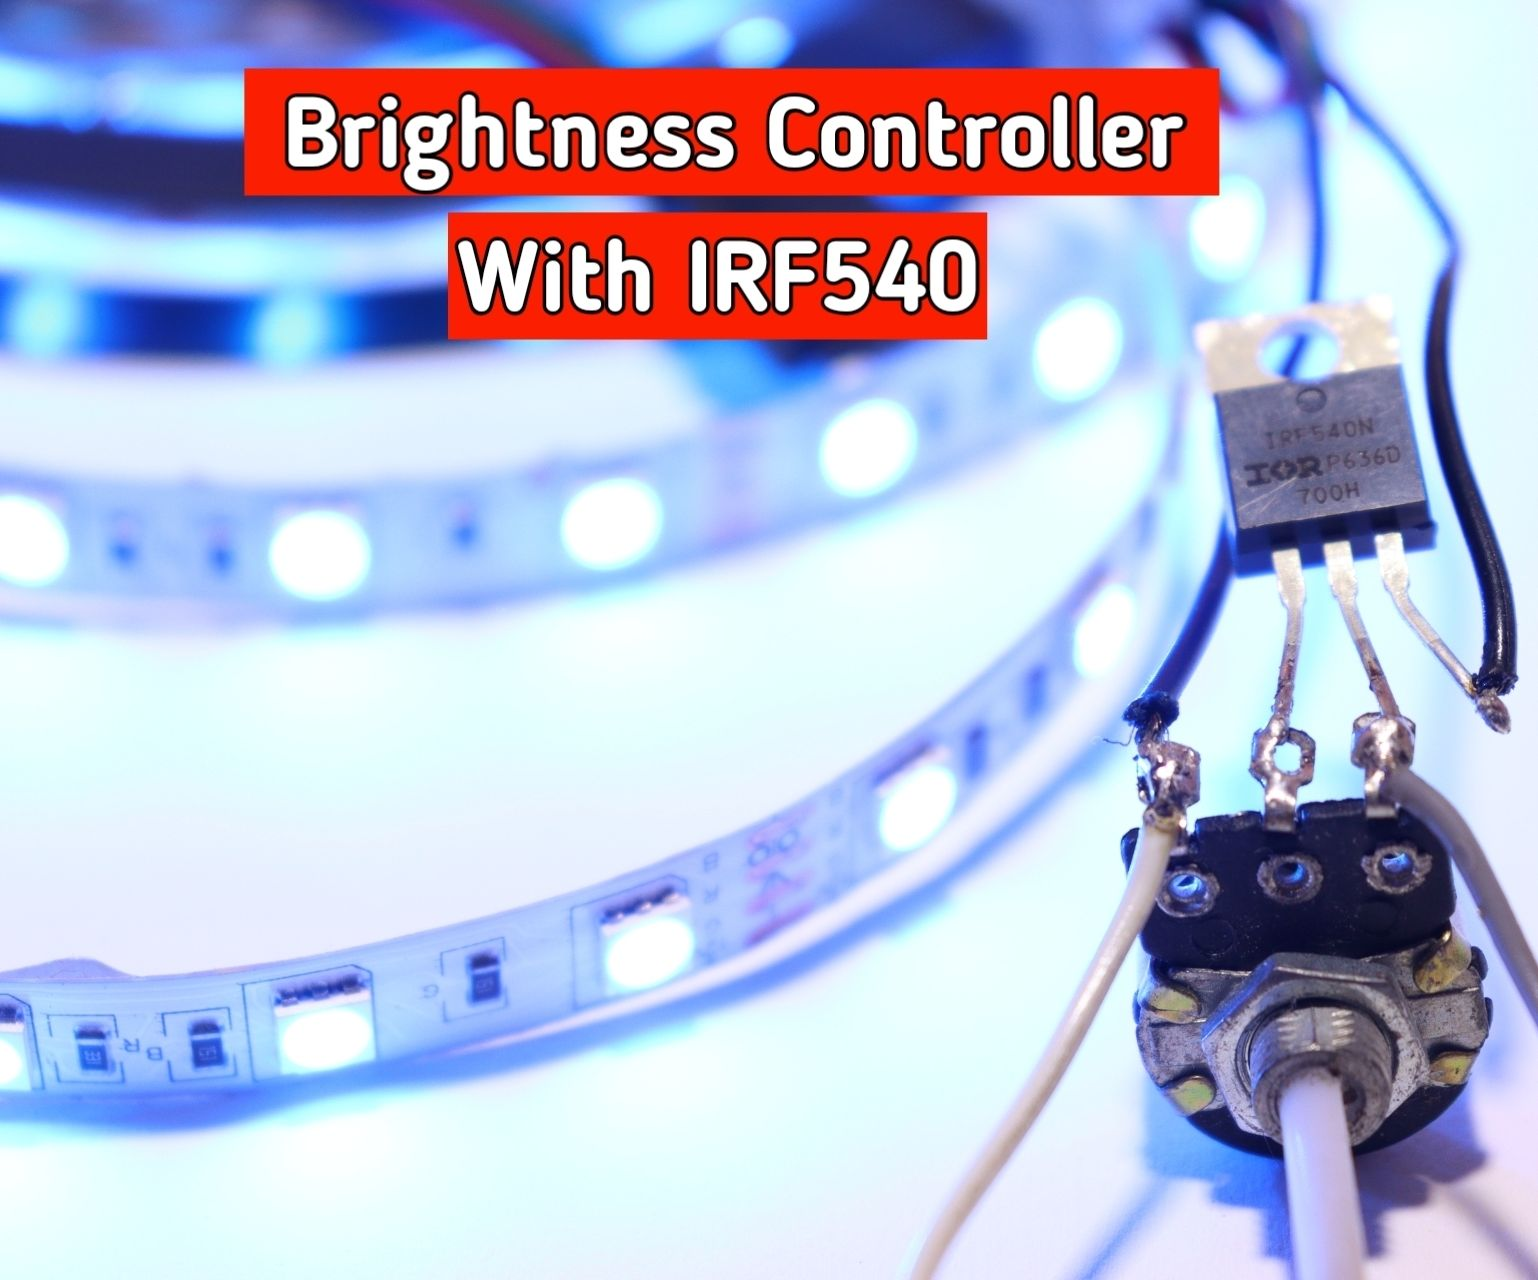 Brightness Controller Circuit for LED Strip Using IRF540 MOSFET